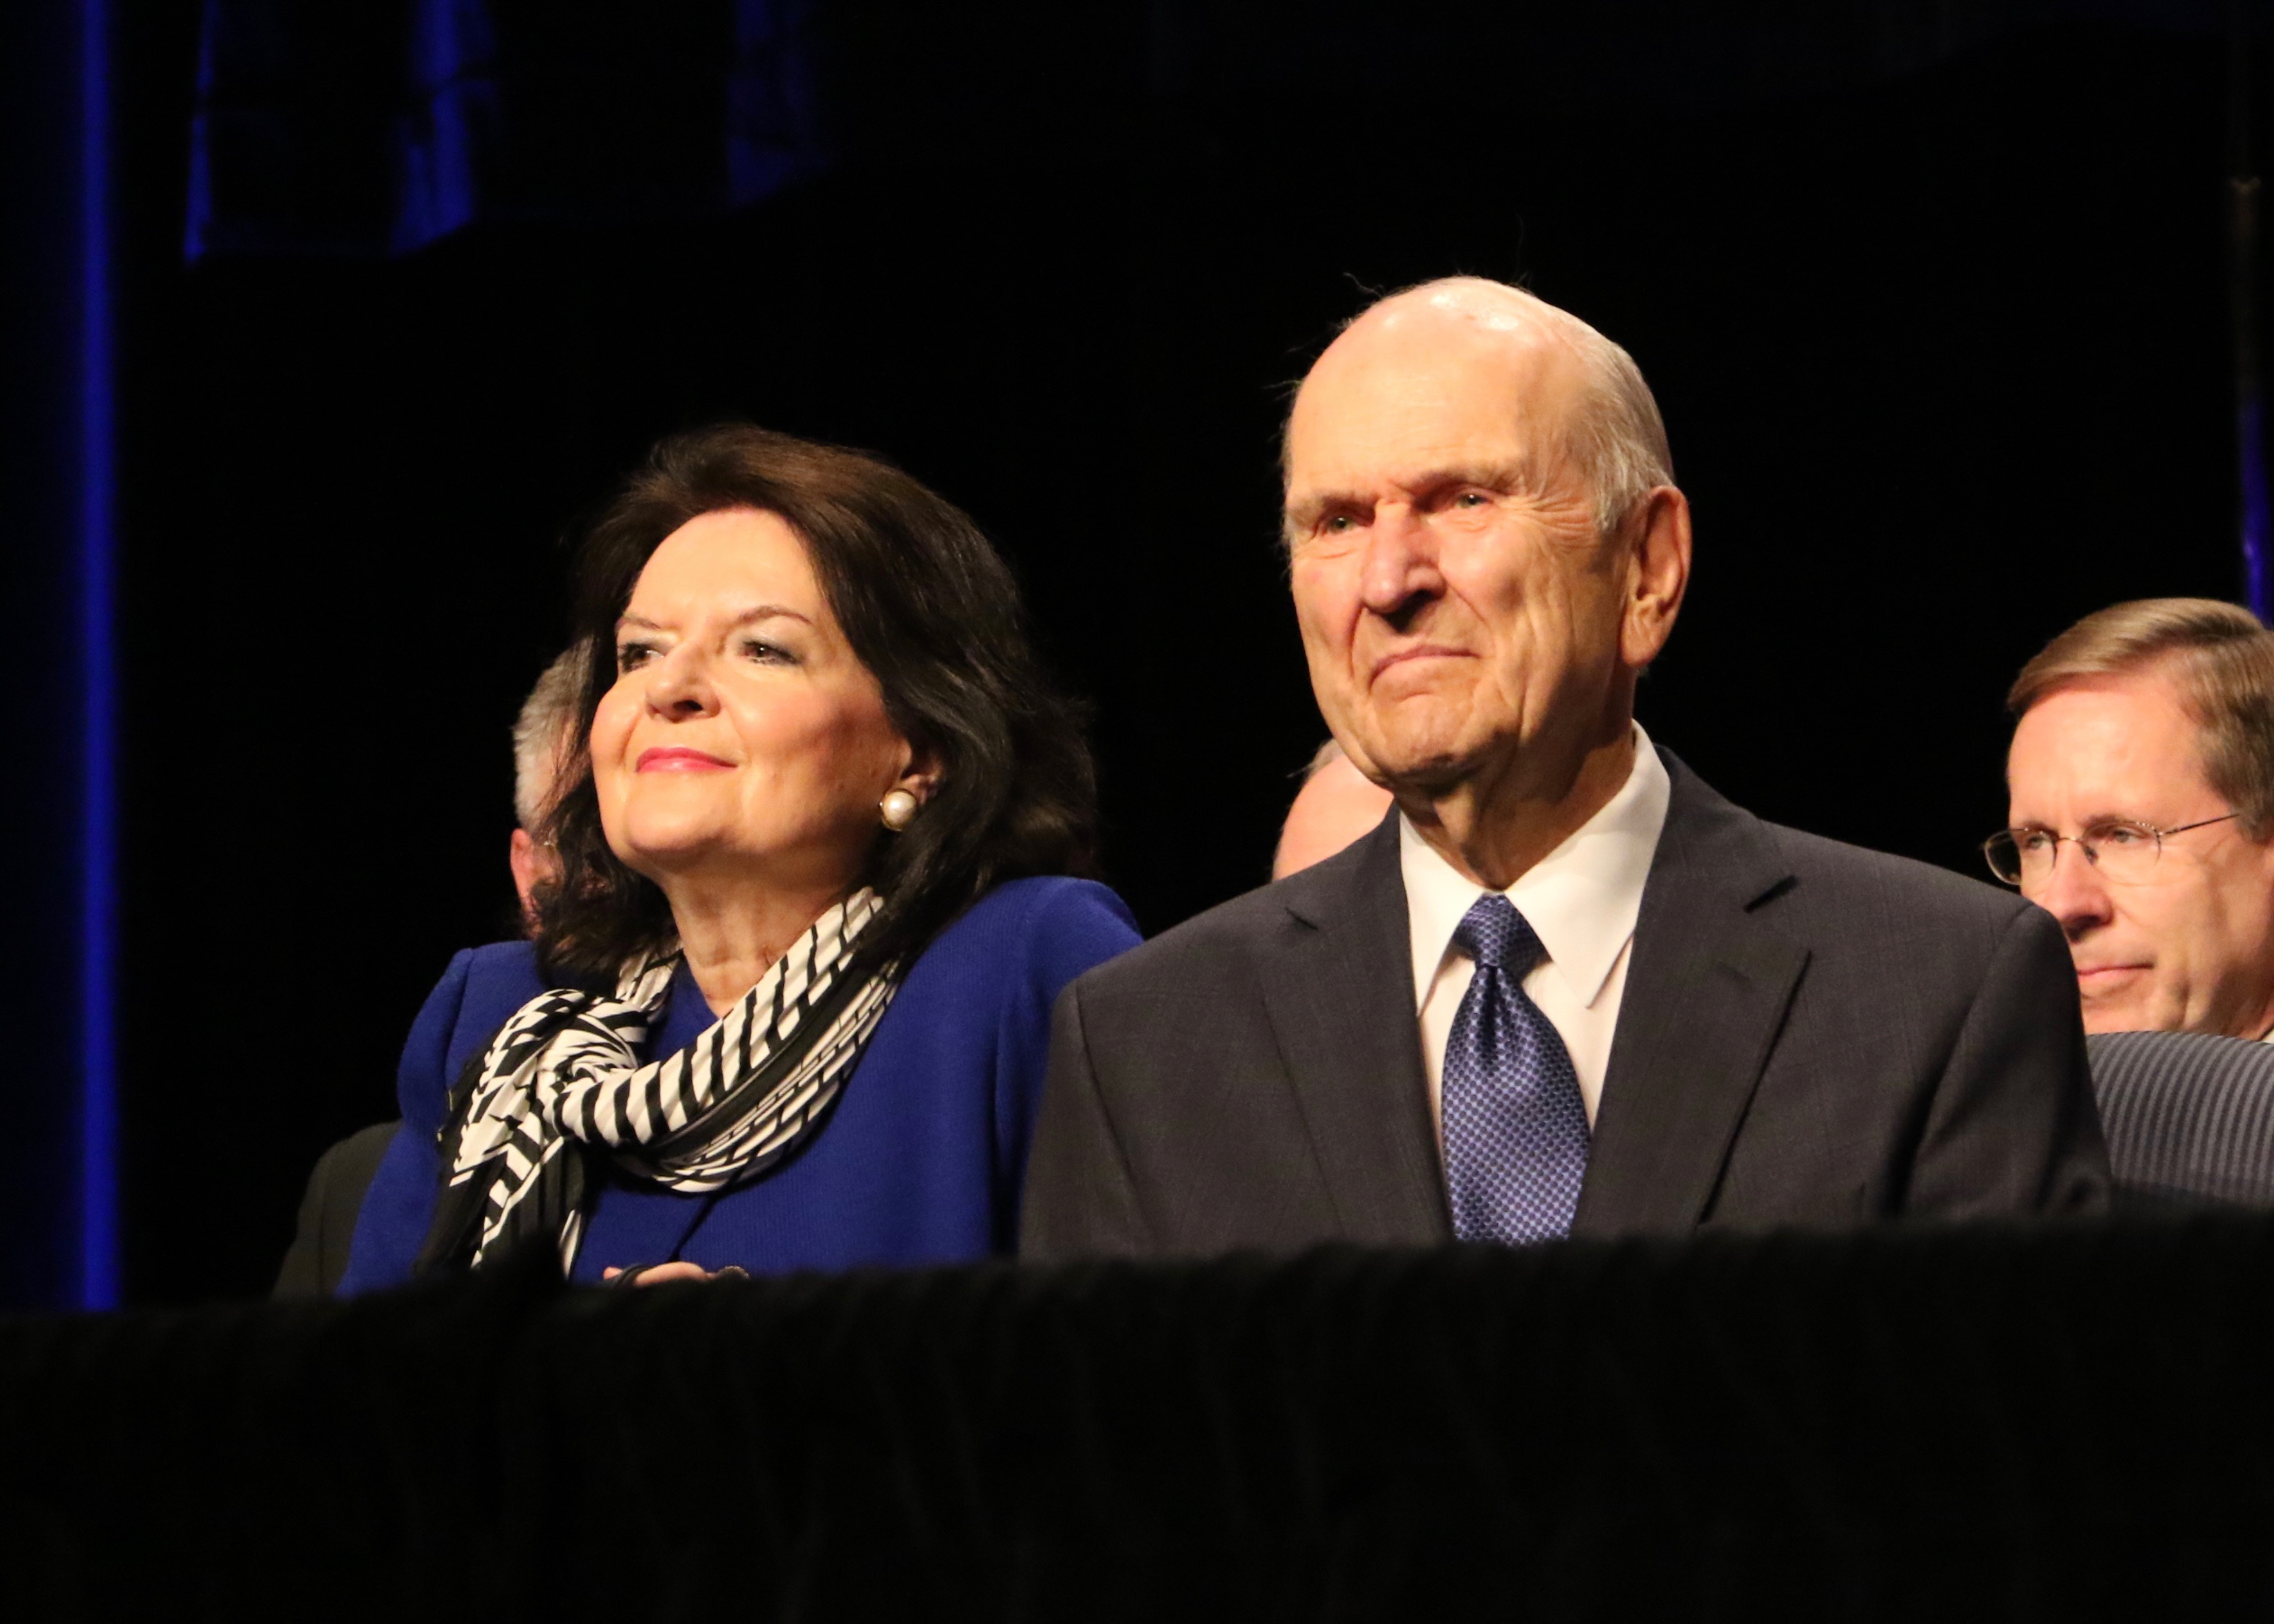 President Russell M. Nelson of The Church of Jesus Christ of Latter-day Saints and his wife, Sister Wendy Nelson, await the start of the Aug. 18, 2018, devotional in the Palais des congrès de Montréal auditorium in Montreal.